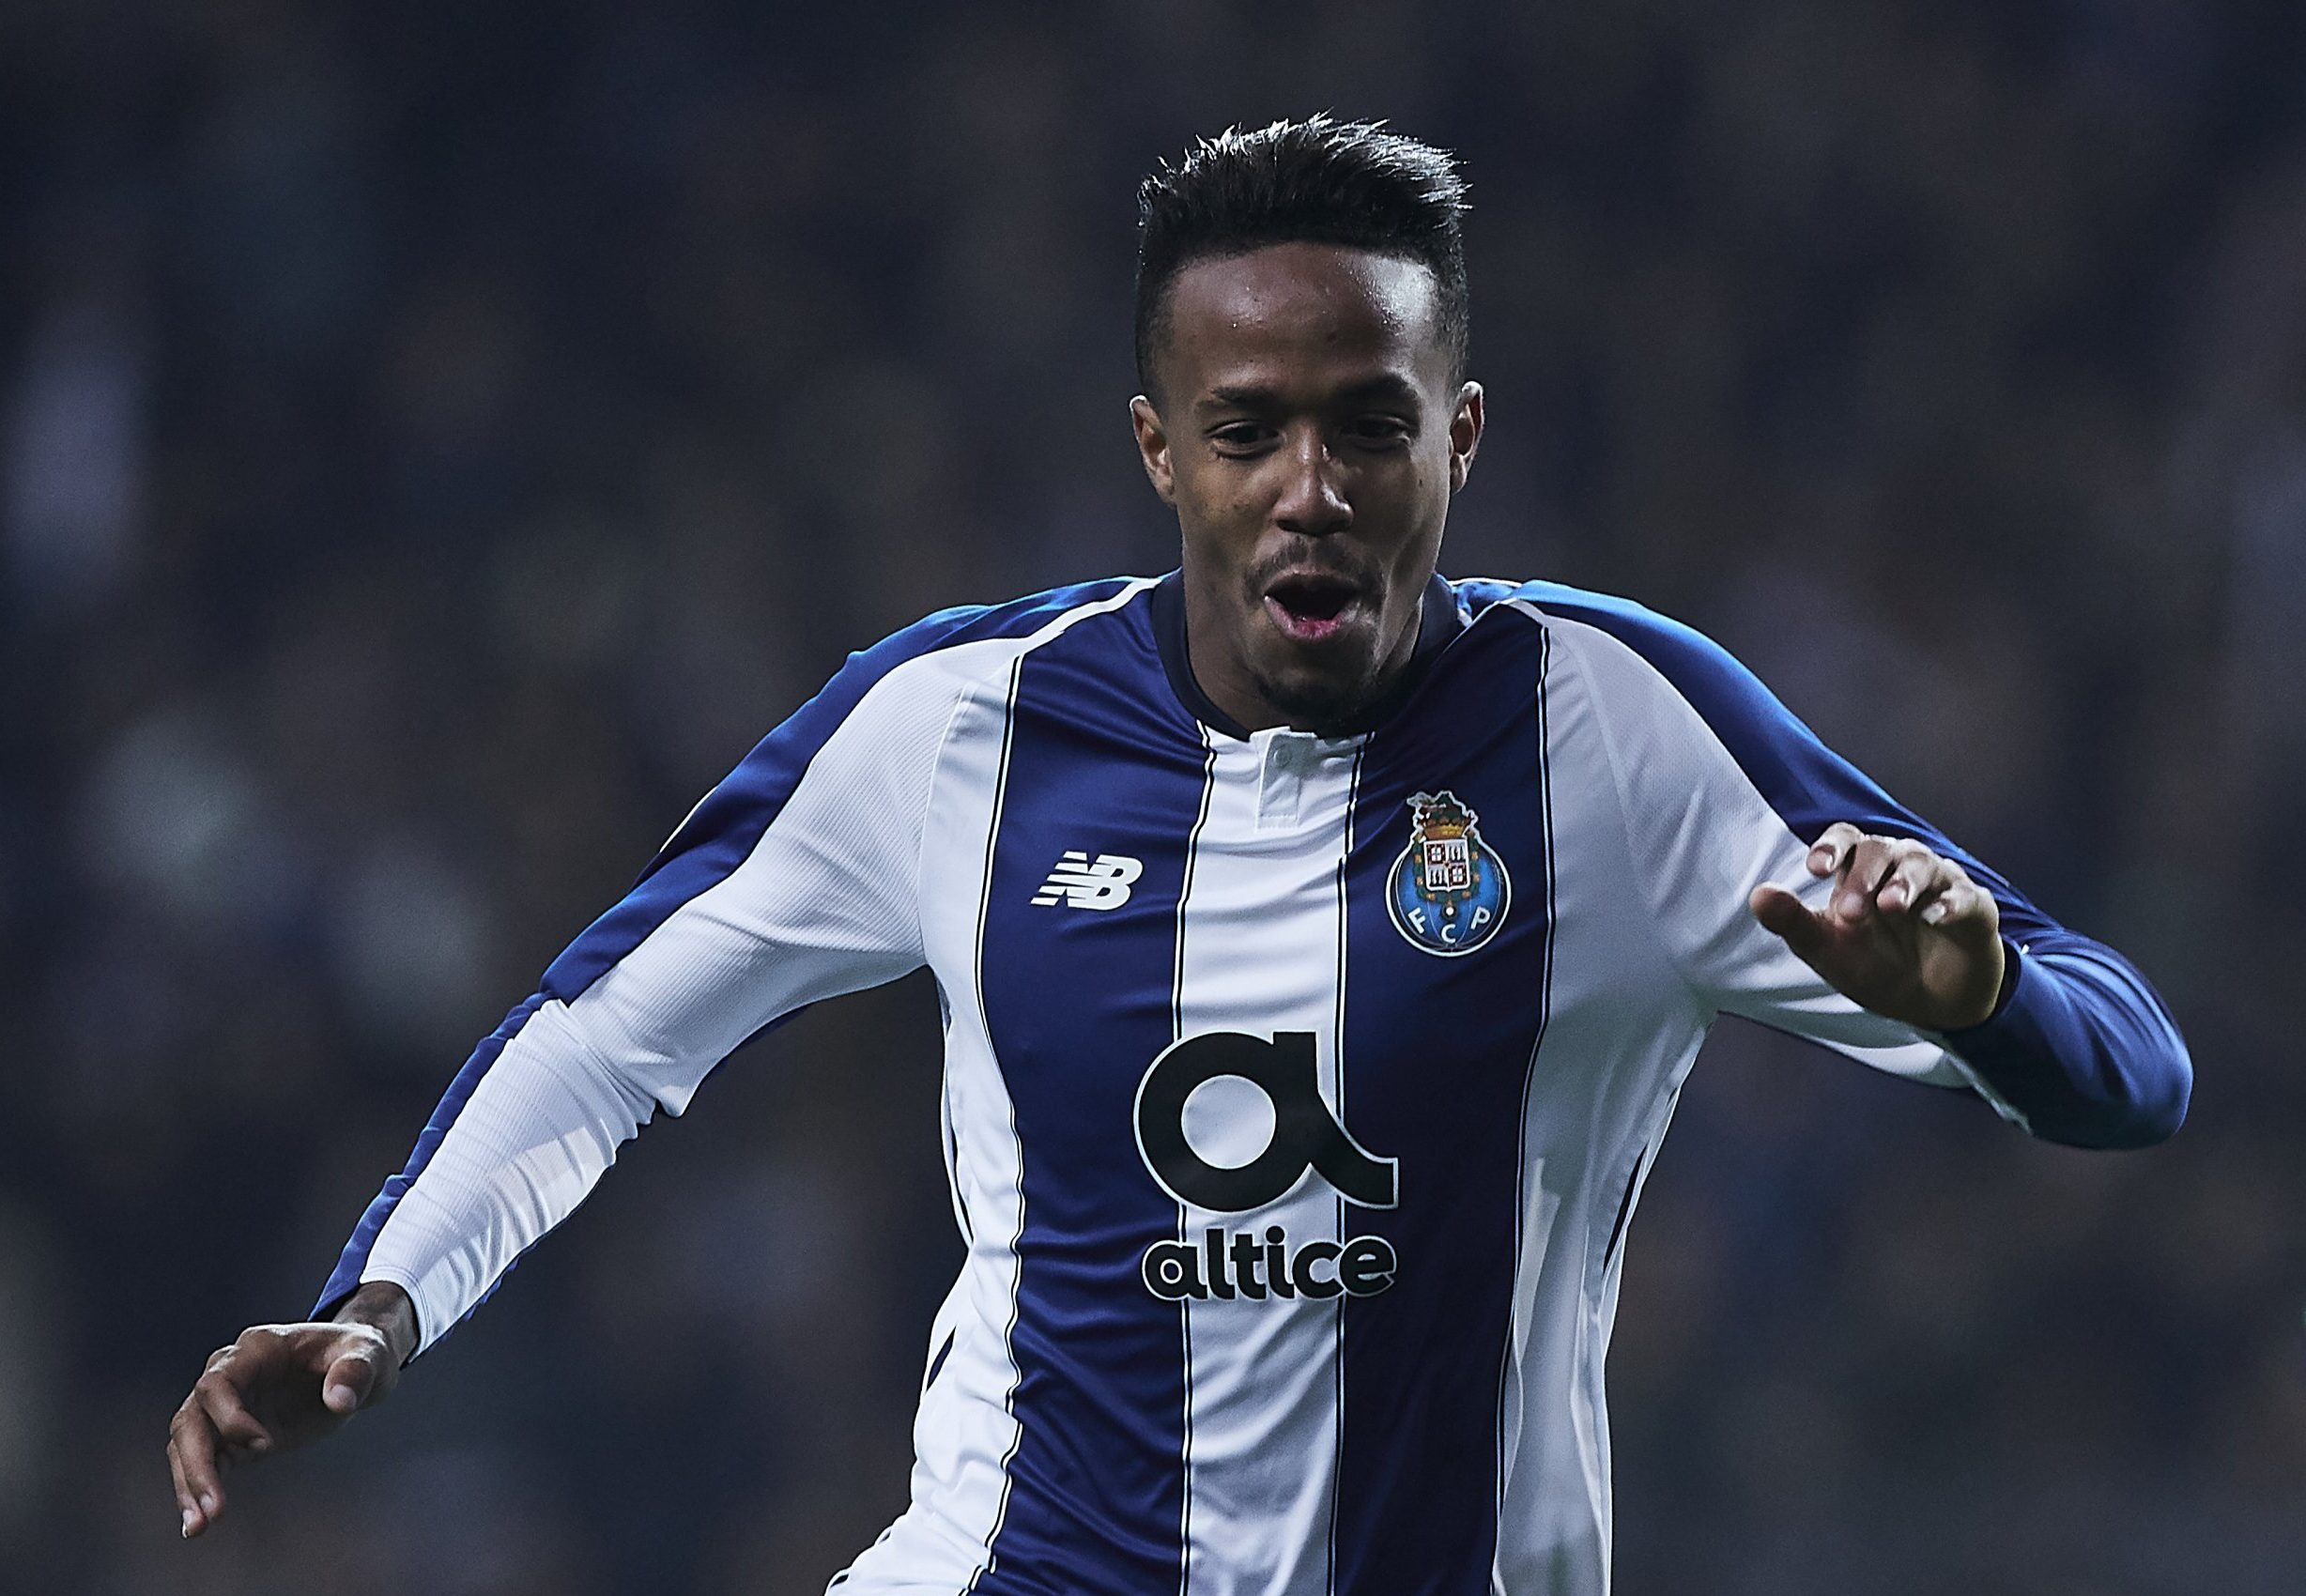 PORTO, PORTUGAL - NOVEMBER 28: Eder Militao of Porto celebrates scoring his team's opening goal during the Group D match of the UEFA Champions League between FC Porto and FC Schalke 04 at Estadio do Dragao on November 28, 2018 in Porto, Portugal. (Photo by Quality Sport Images/Getty Images)